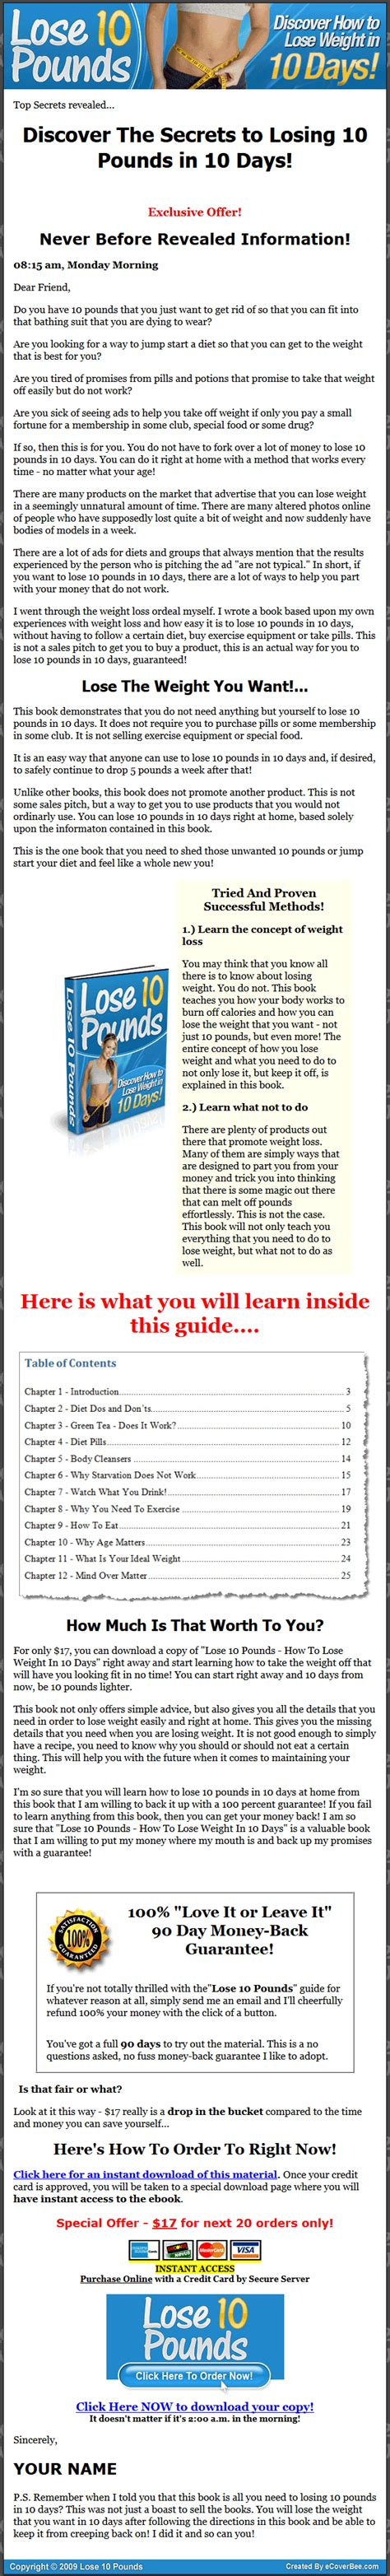 Plr Ebooks With Giveaway Rights - lose 10 pounds in 10 days plr ebook with private label rights